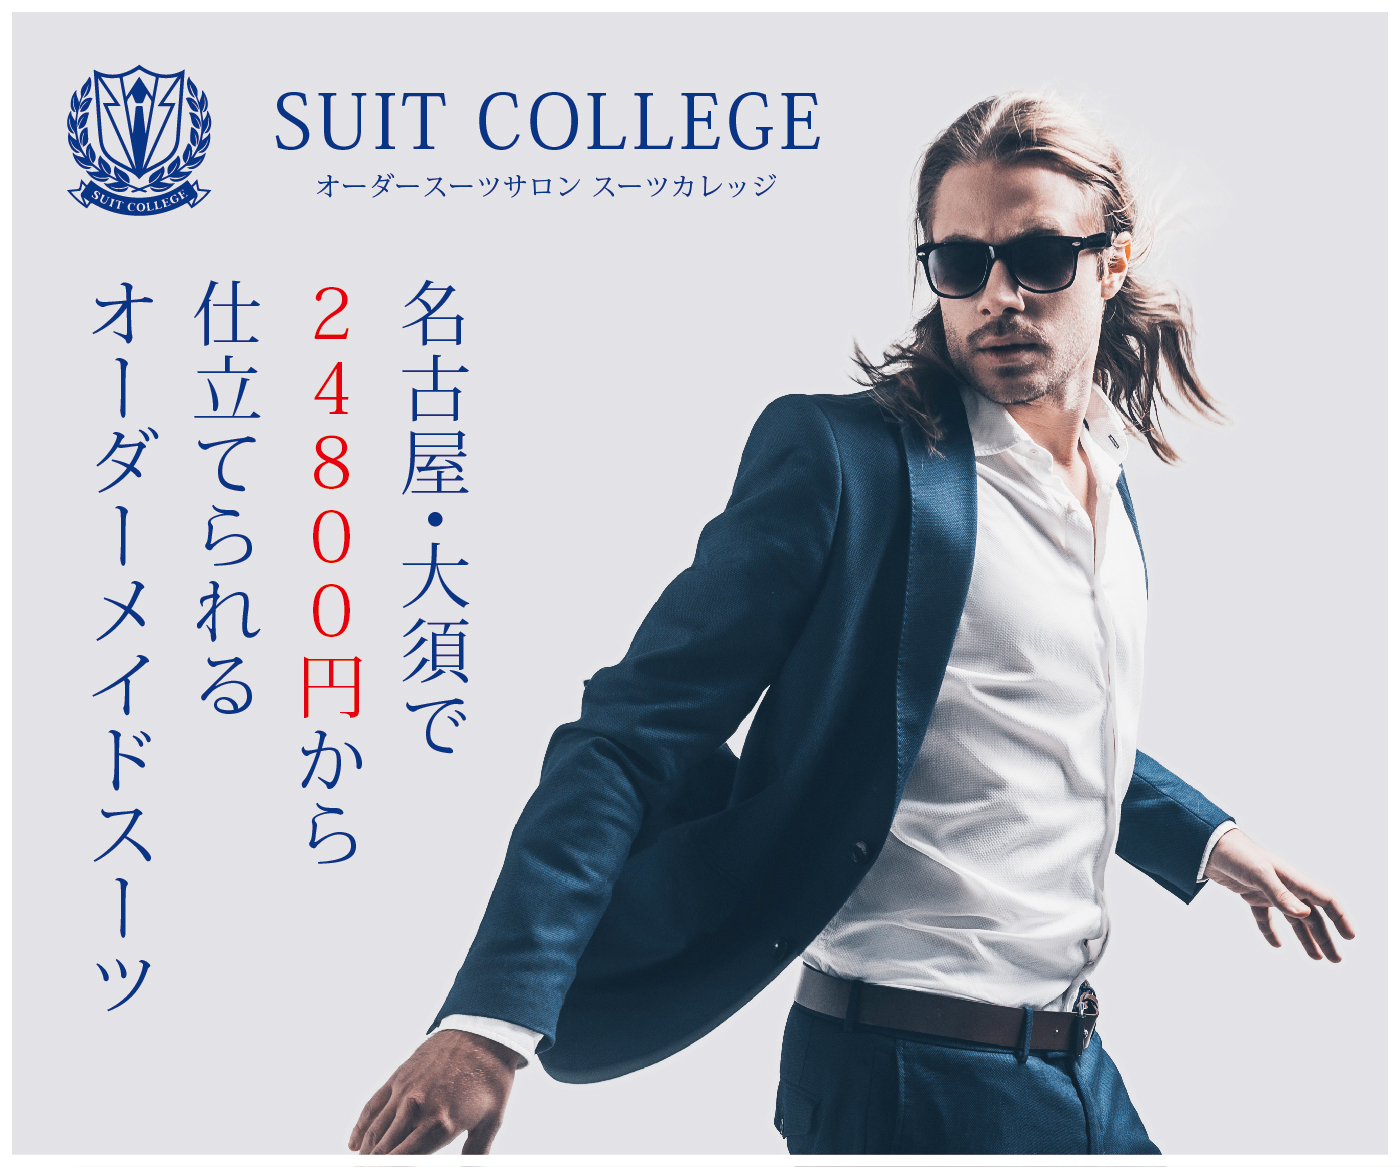 http://suit-college.com/order,suit.php